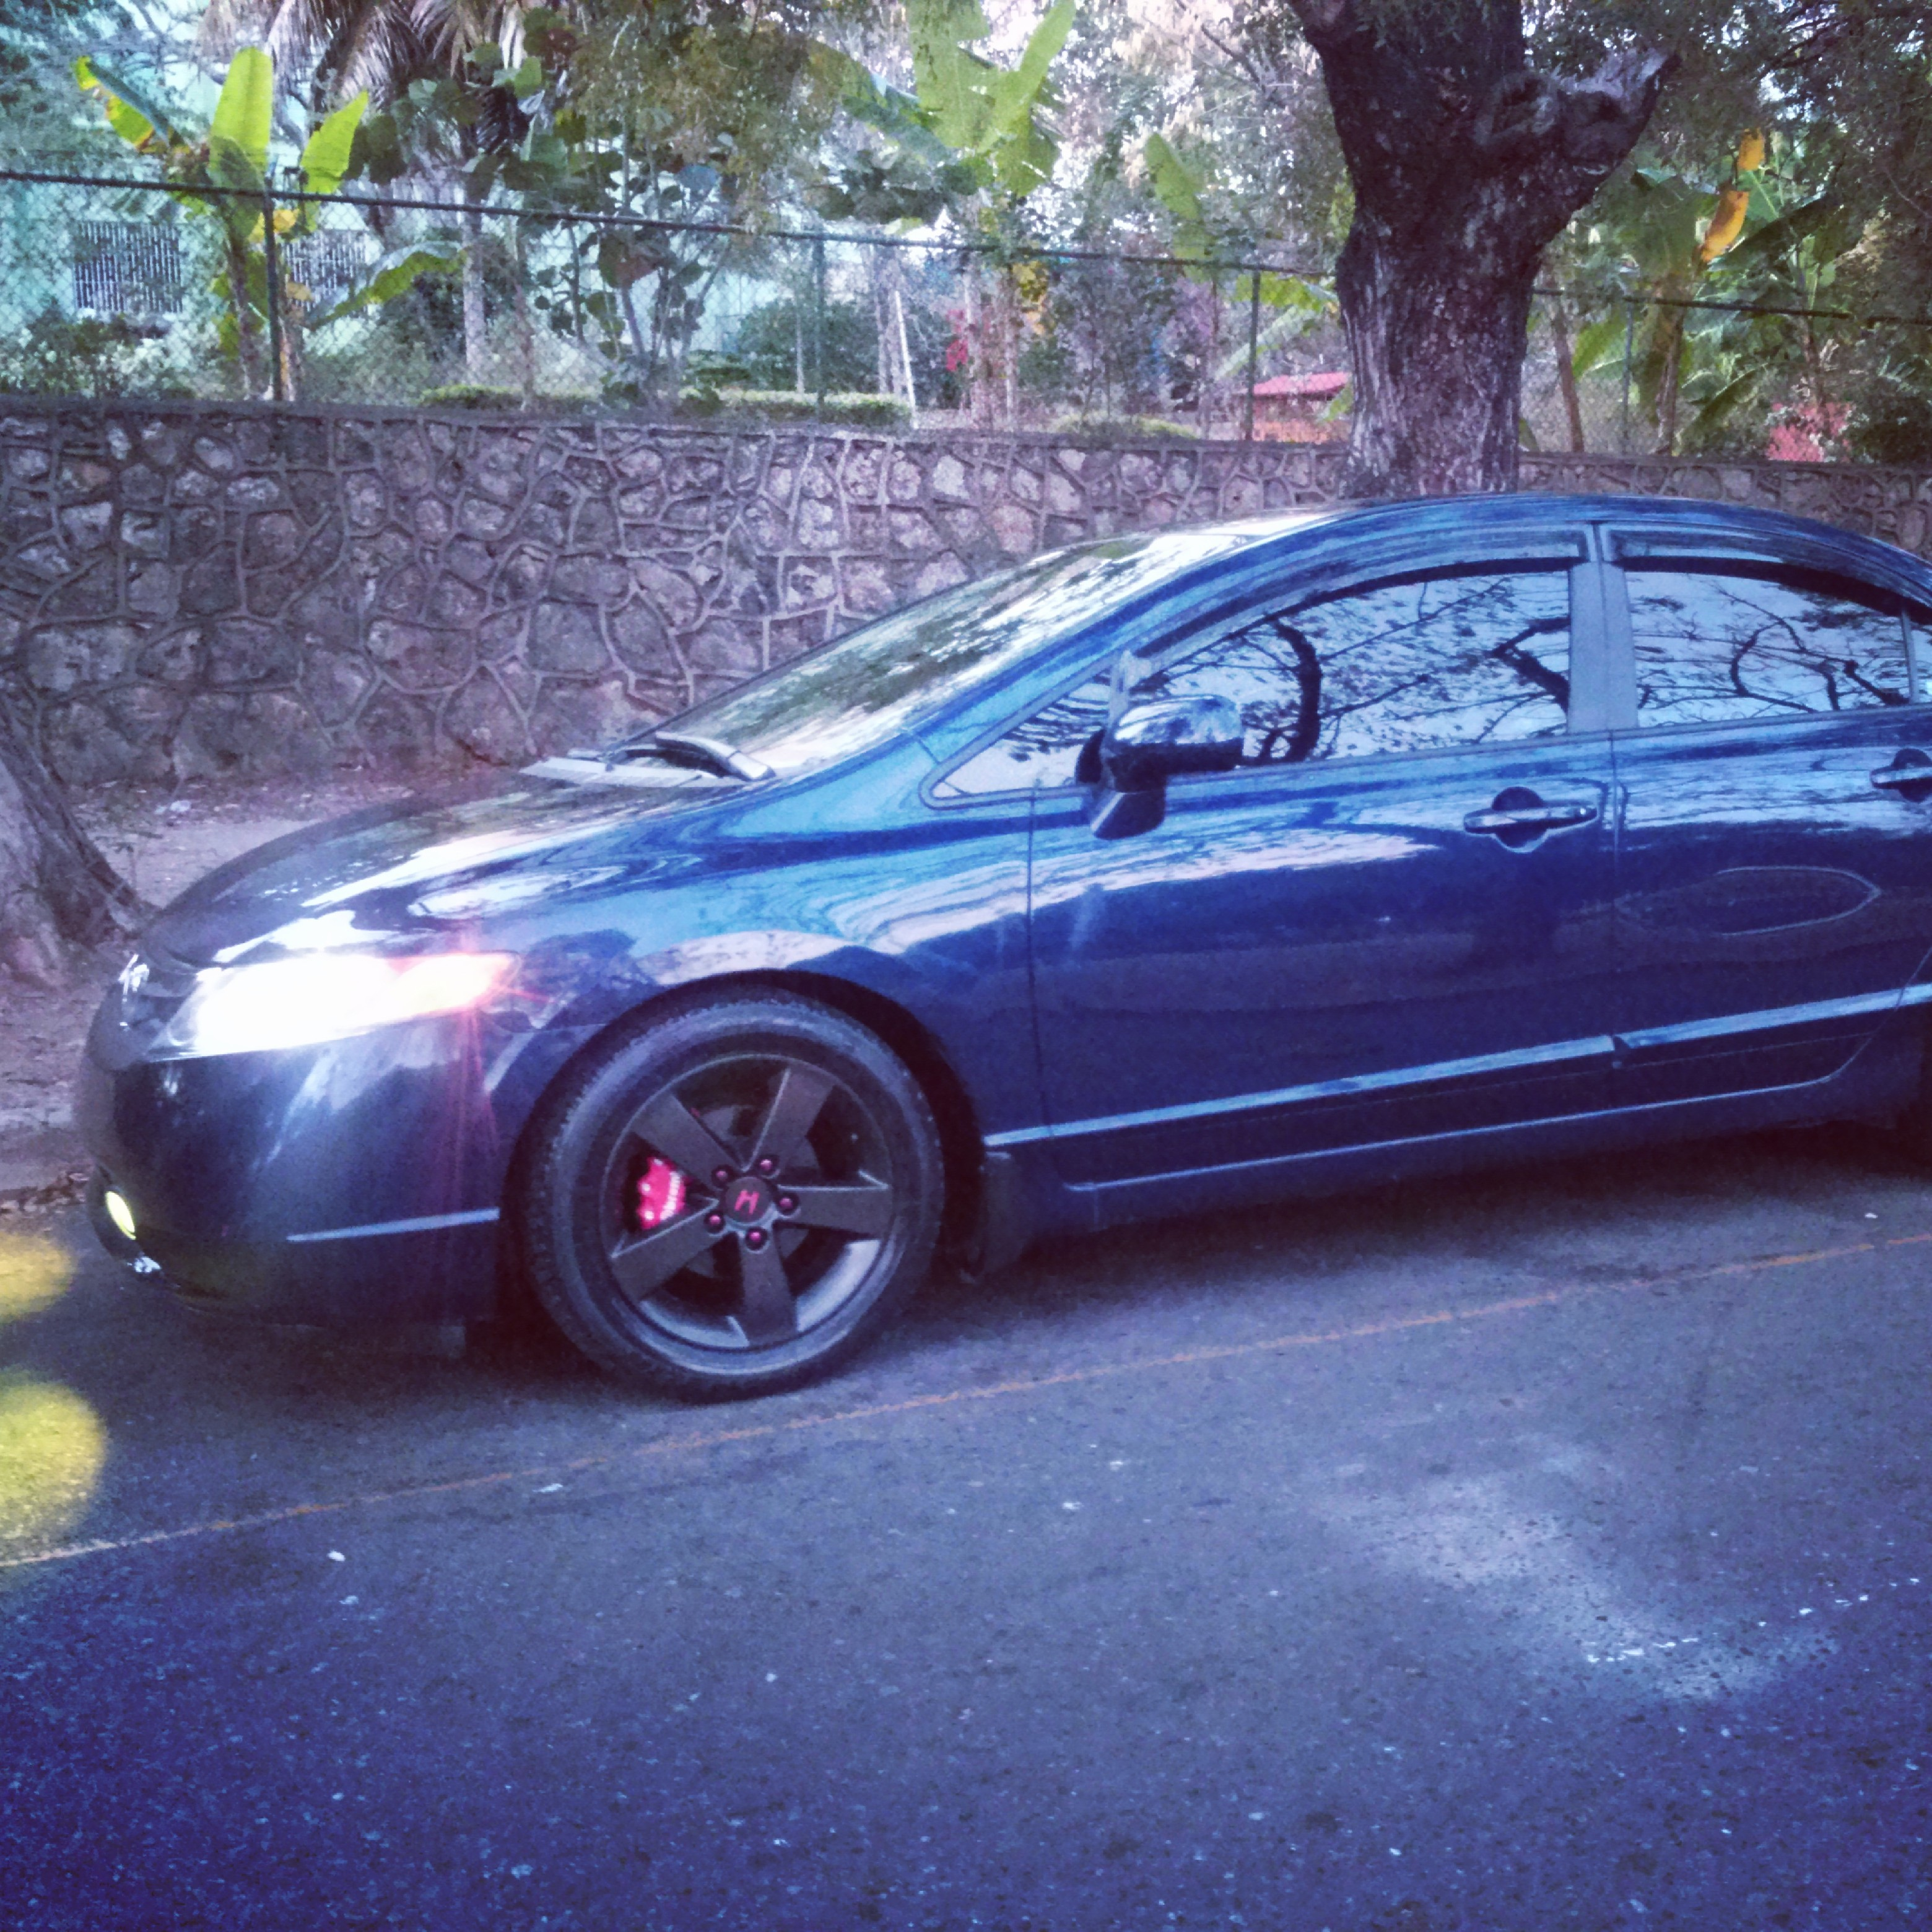 CivicBlueDreamDR's 2006 Honda Civic